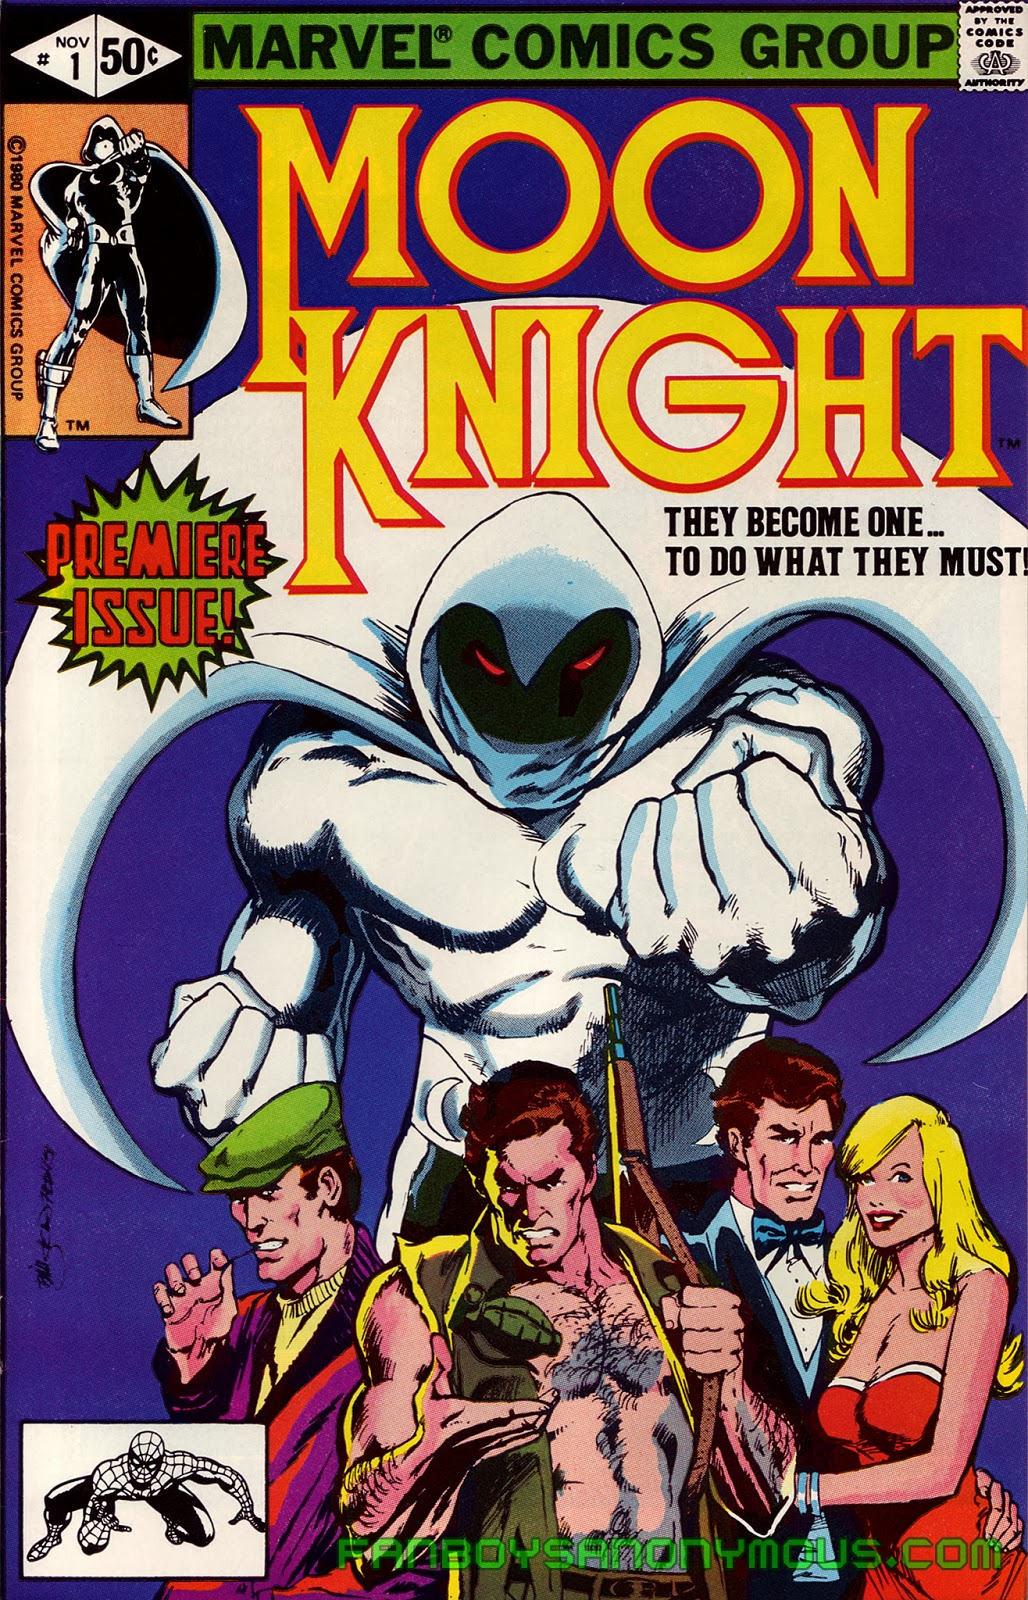 Read Moon Knight digitally on Comixology